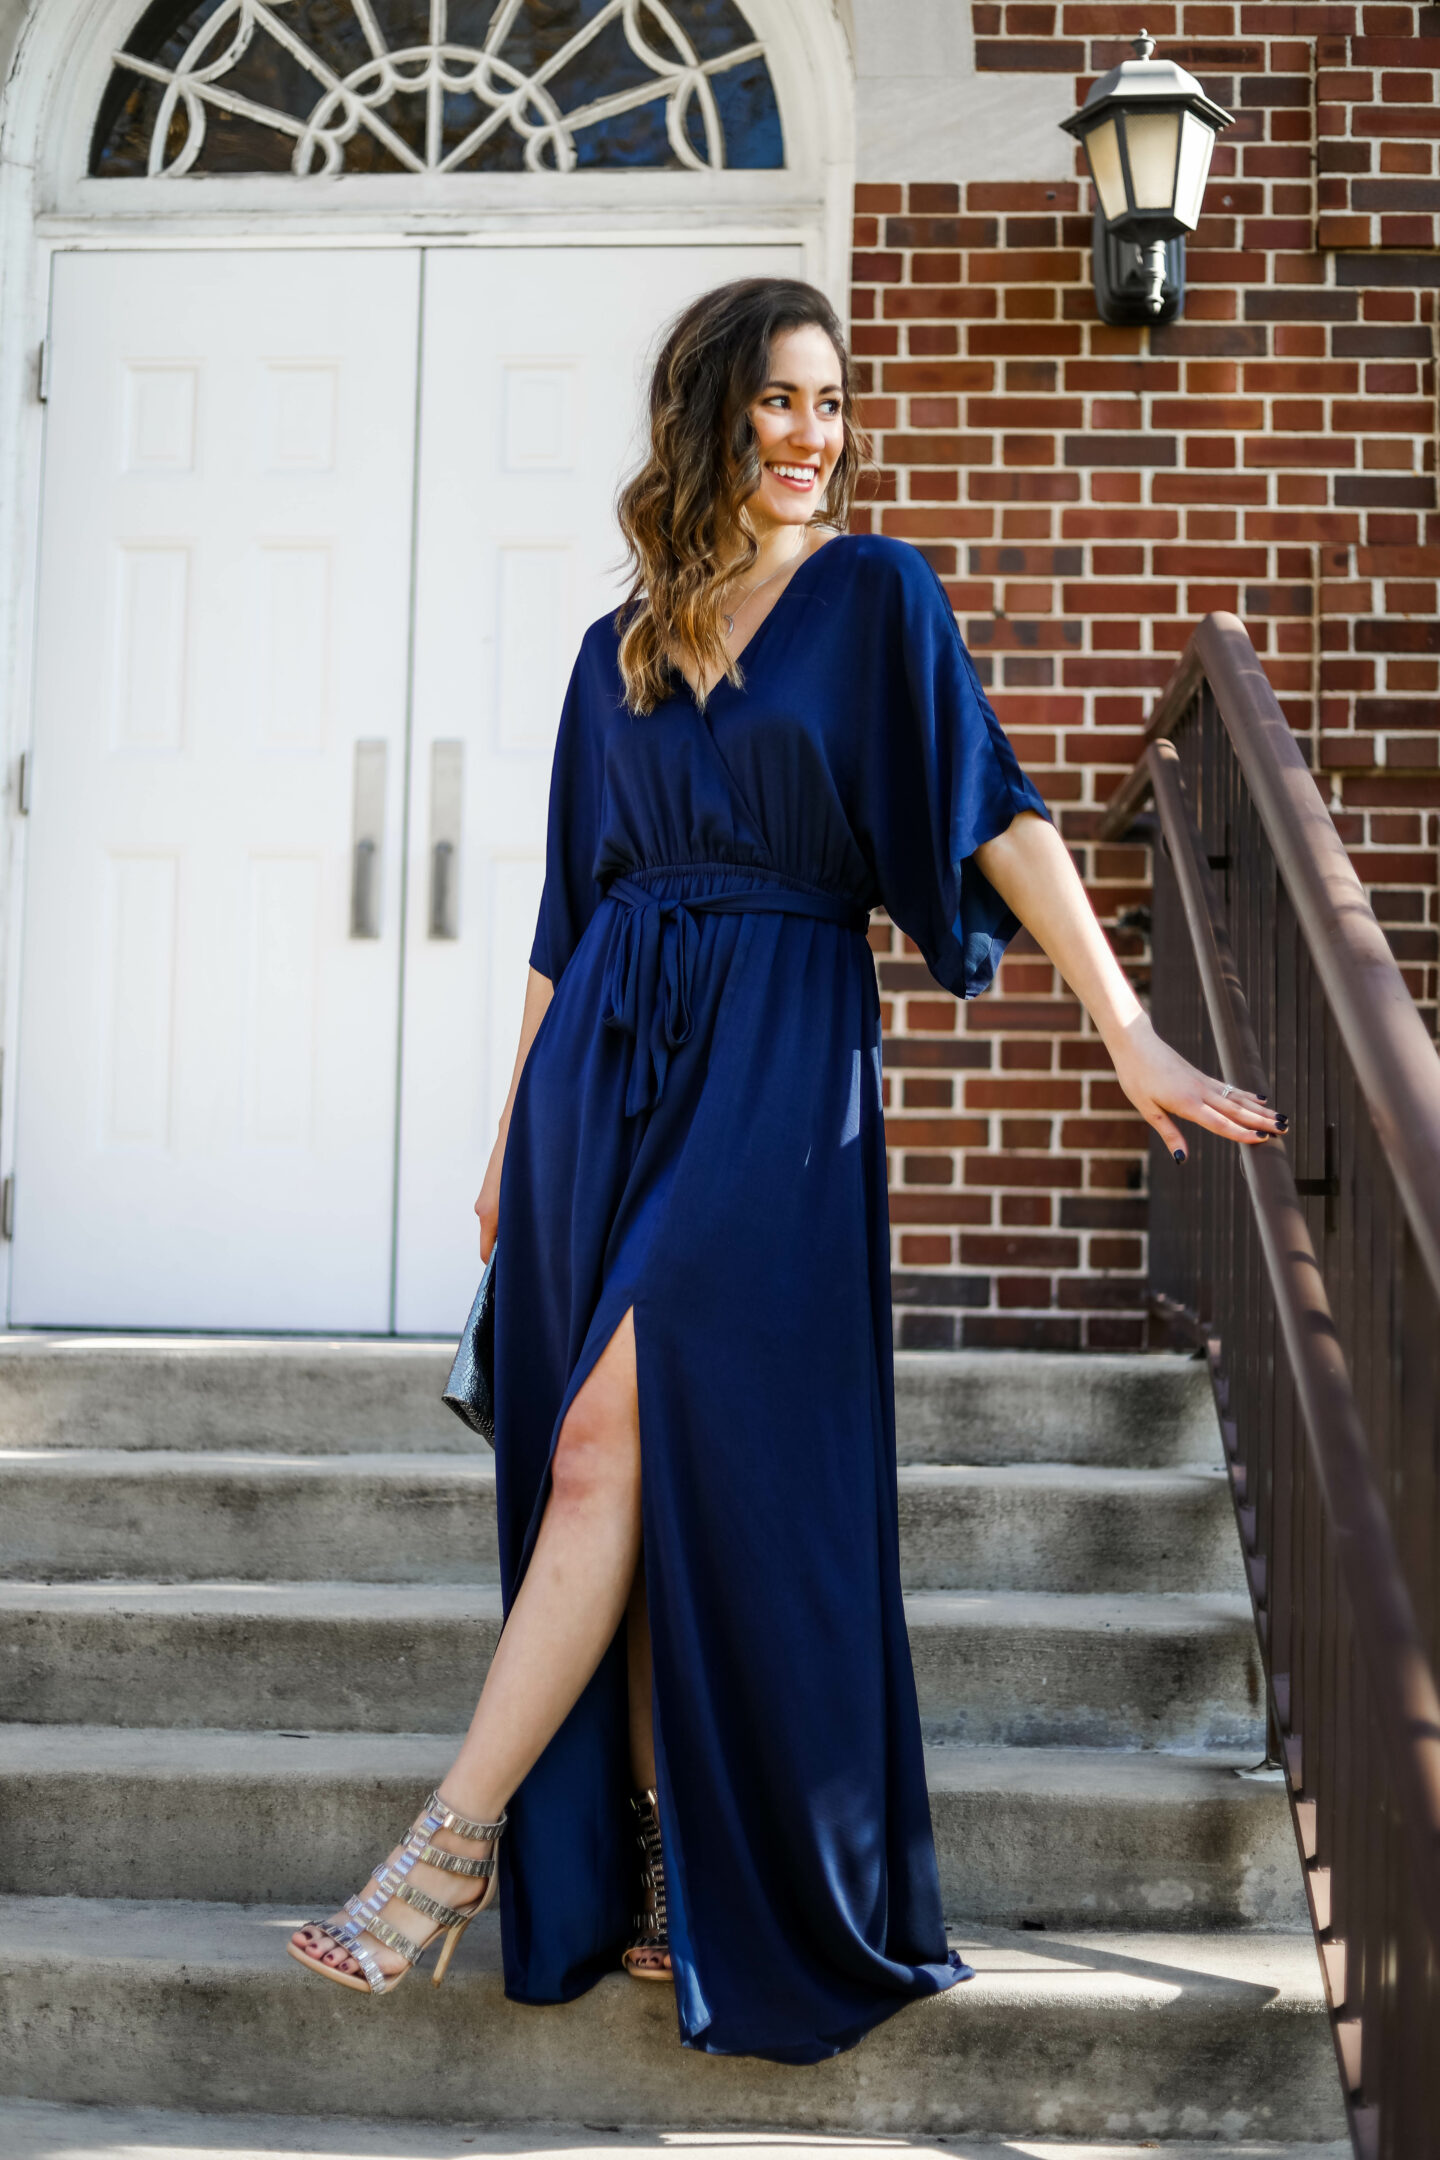 Two Fall Wedding Guest Dresses UNDER $50 - on Coming Up Roses